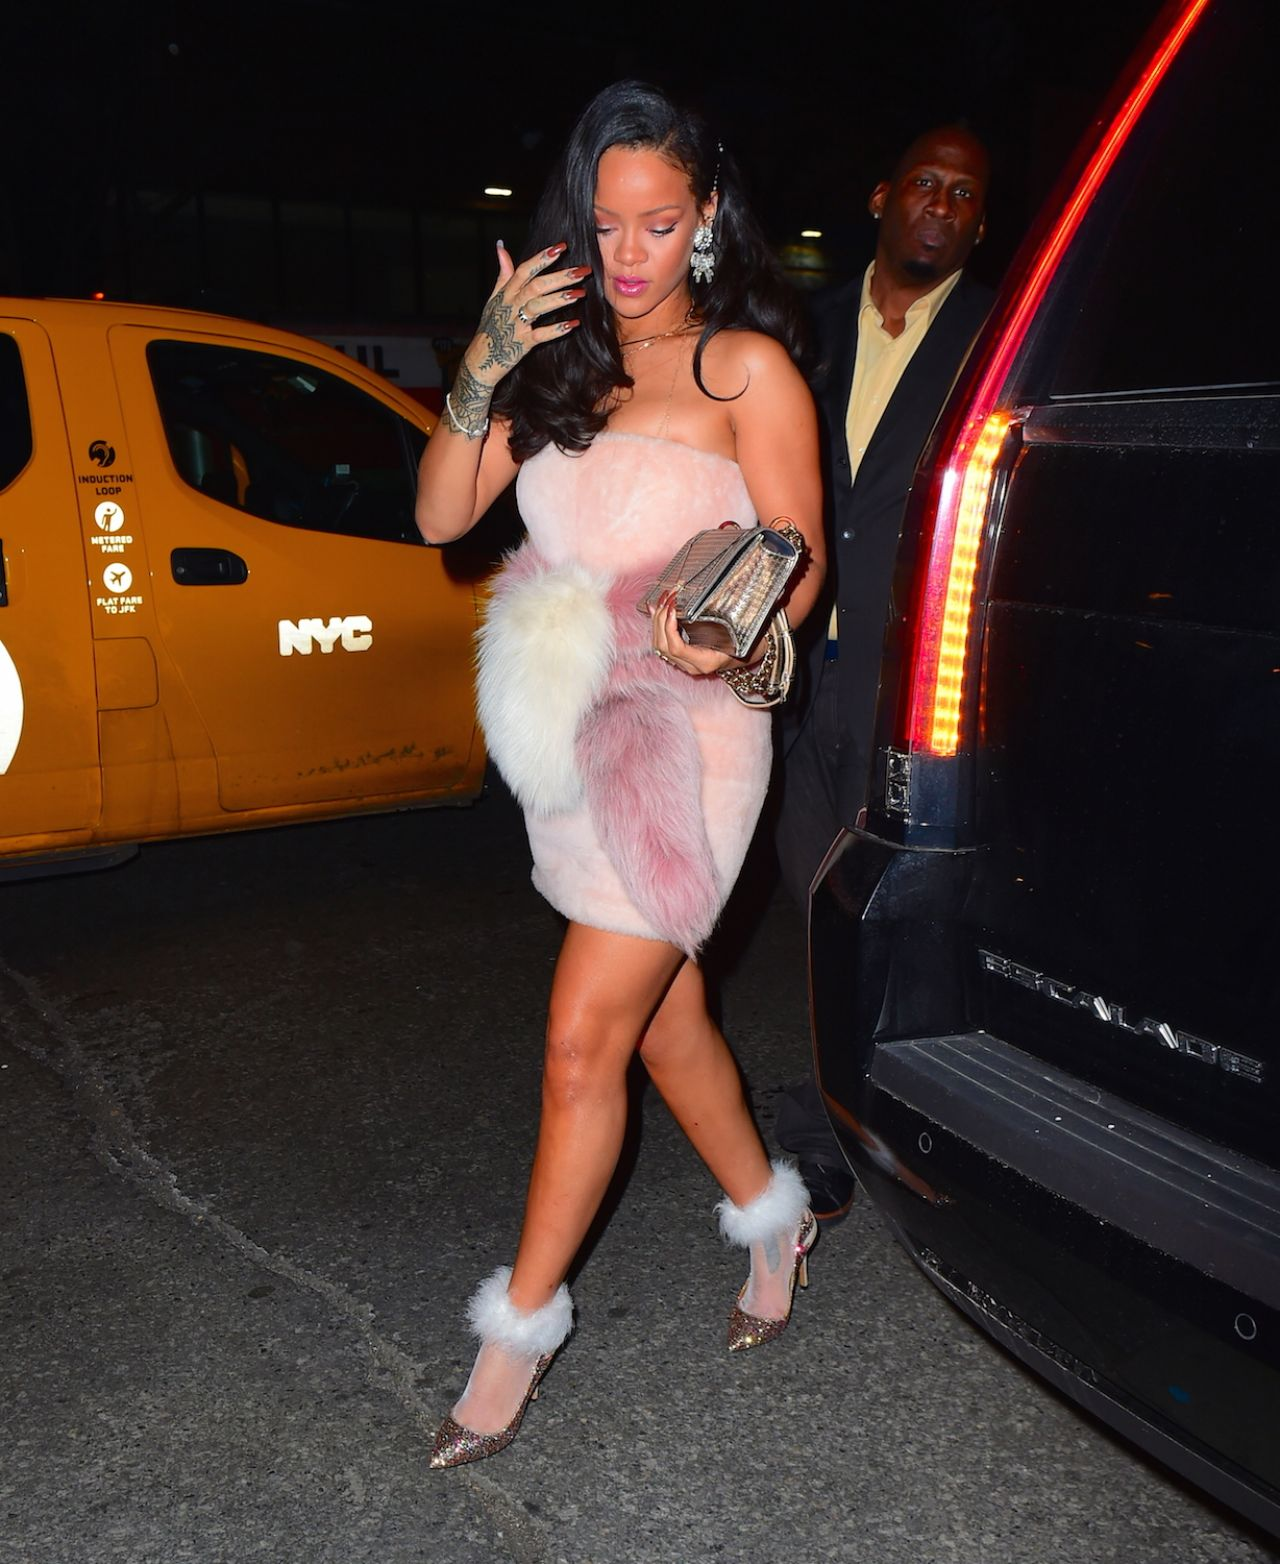 rihanna-night-out-style-outside-sono-club-in-new-york-city-01-01-2016-1-1